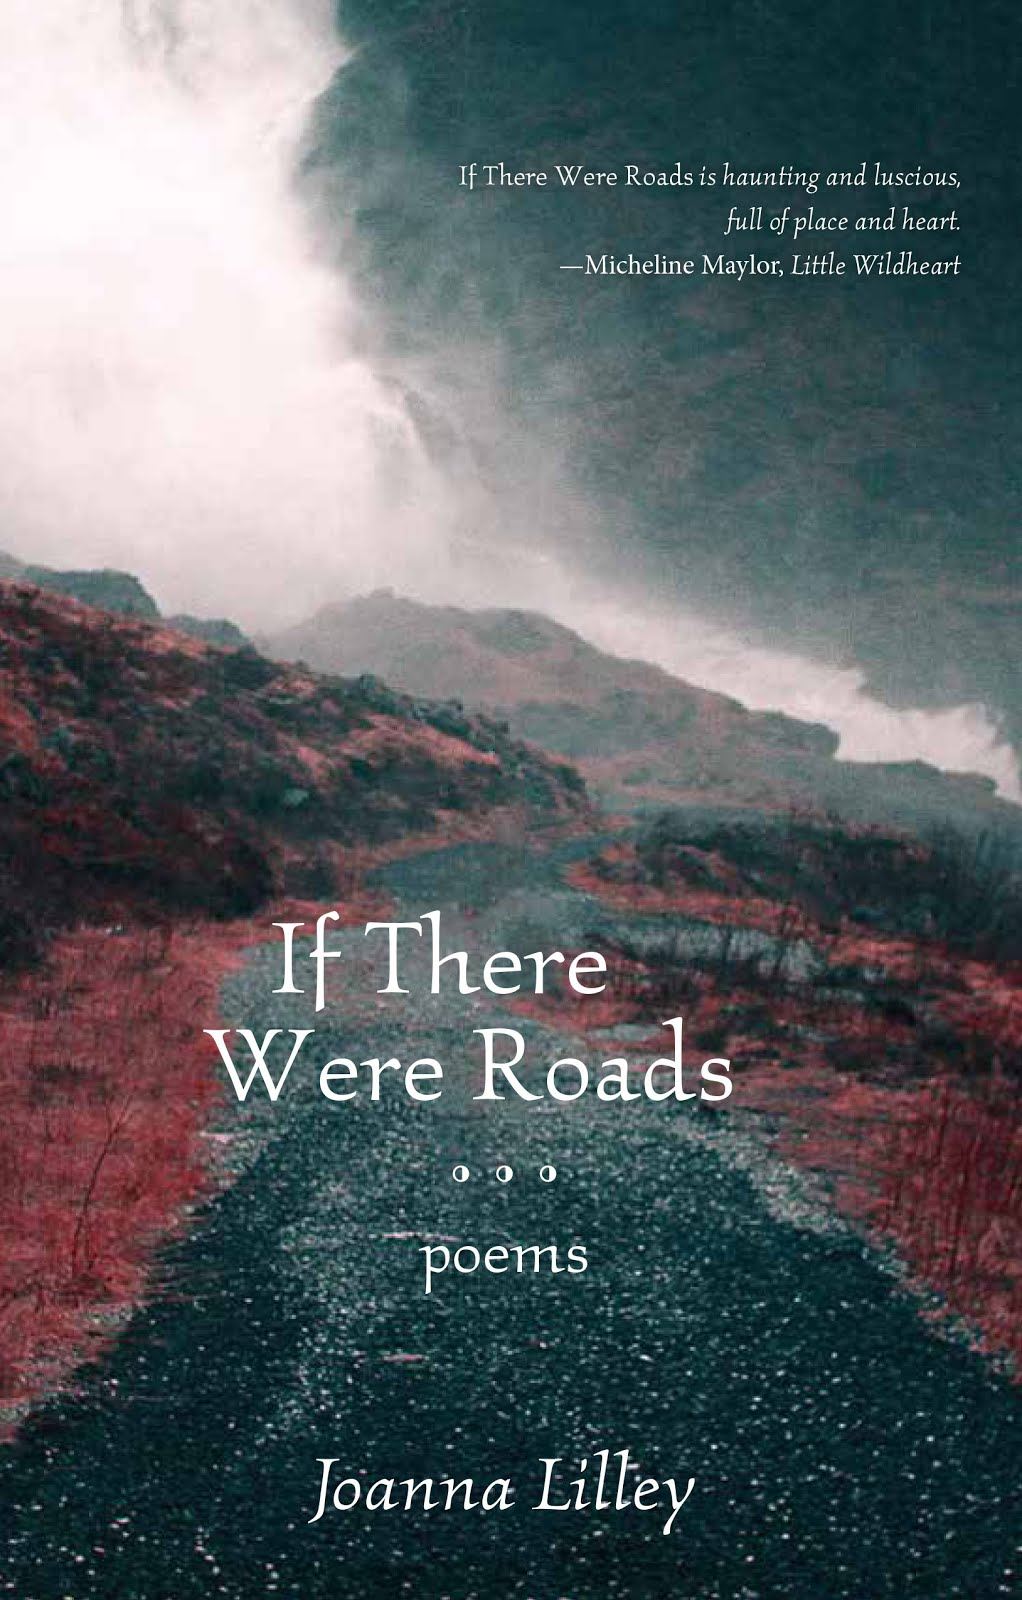 If There Were Roads is being published by Turnstone Press in April 2017